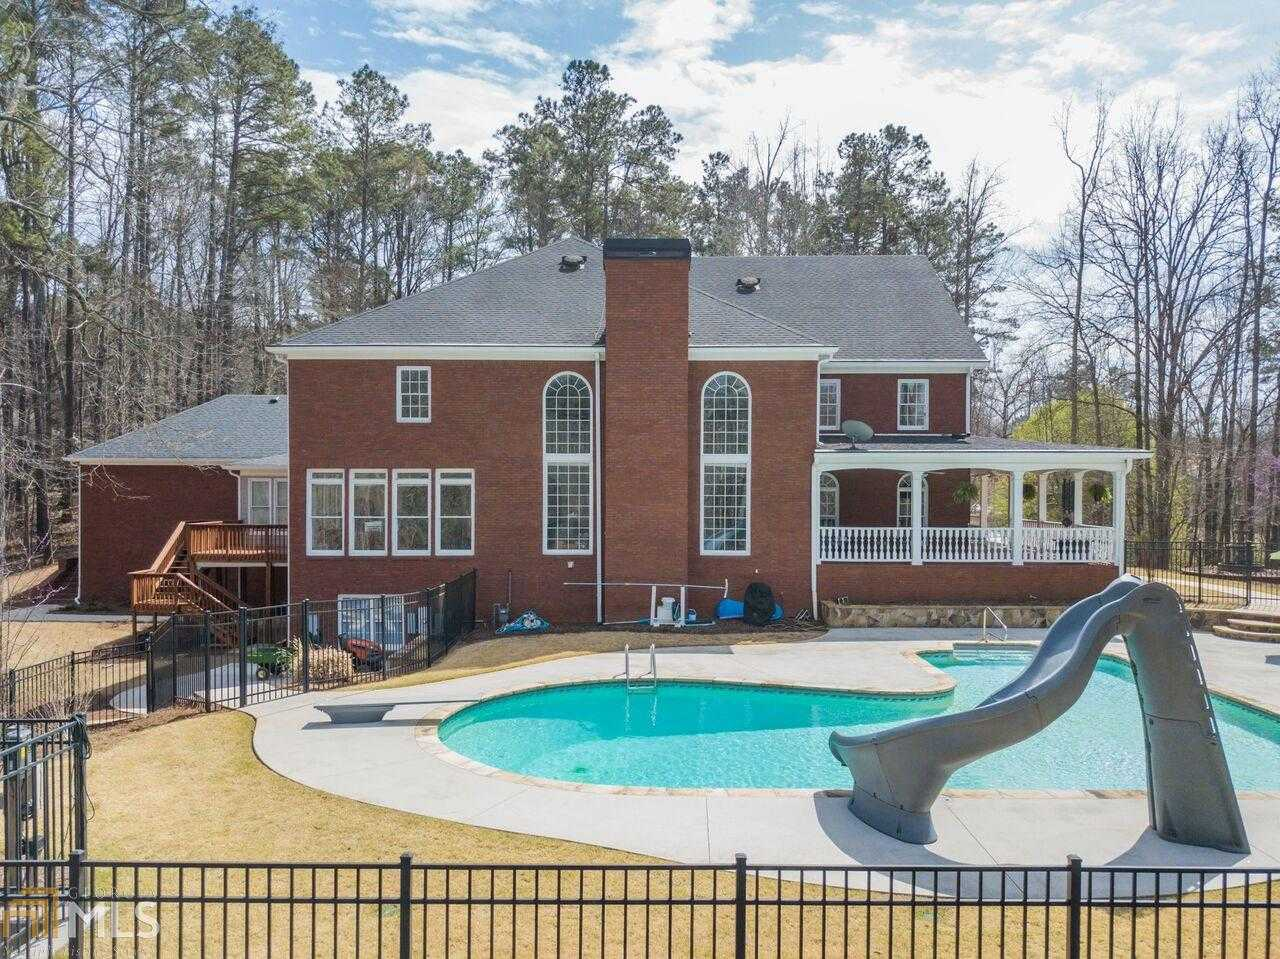 $1,050,000 - 7Br/8Ba -  for Sale in None, Kennesaw